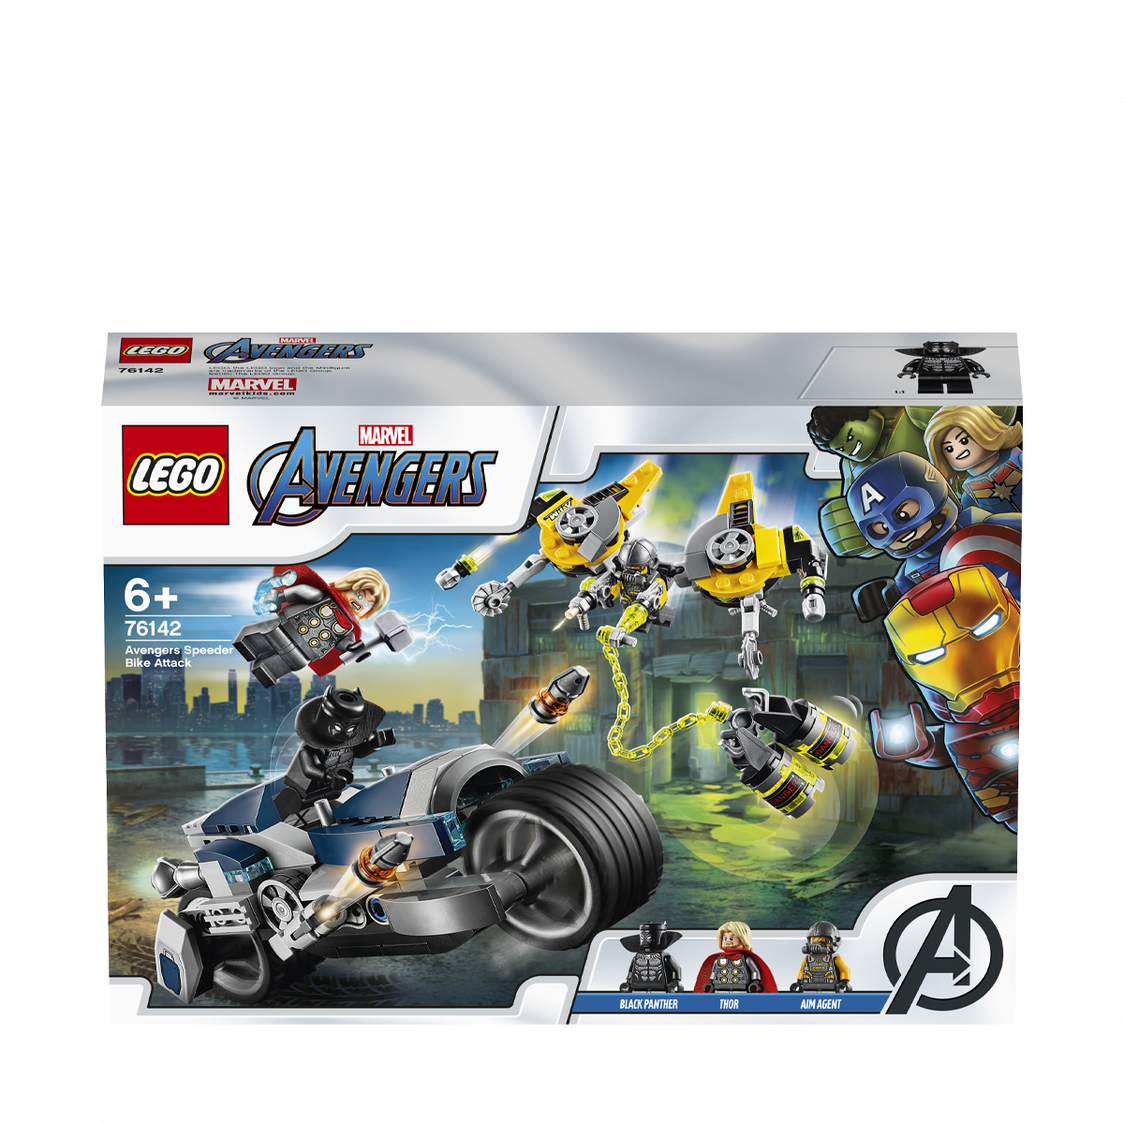 Avengers Speeder Bike Attack 76142